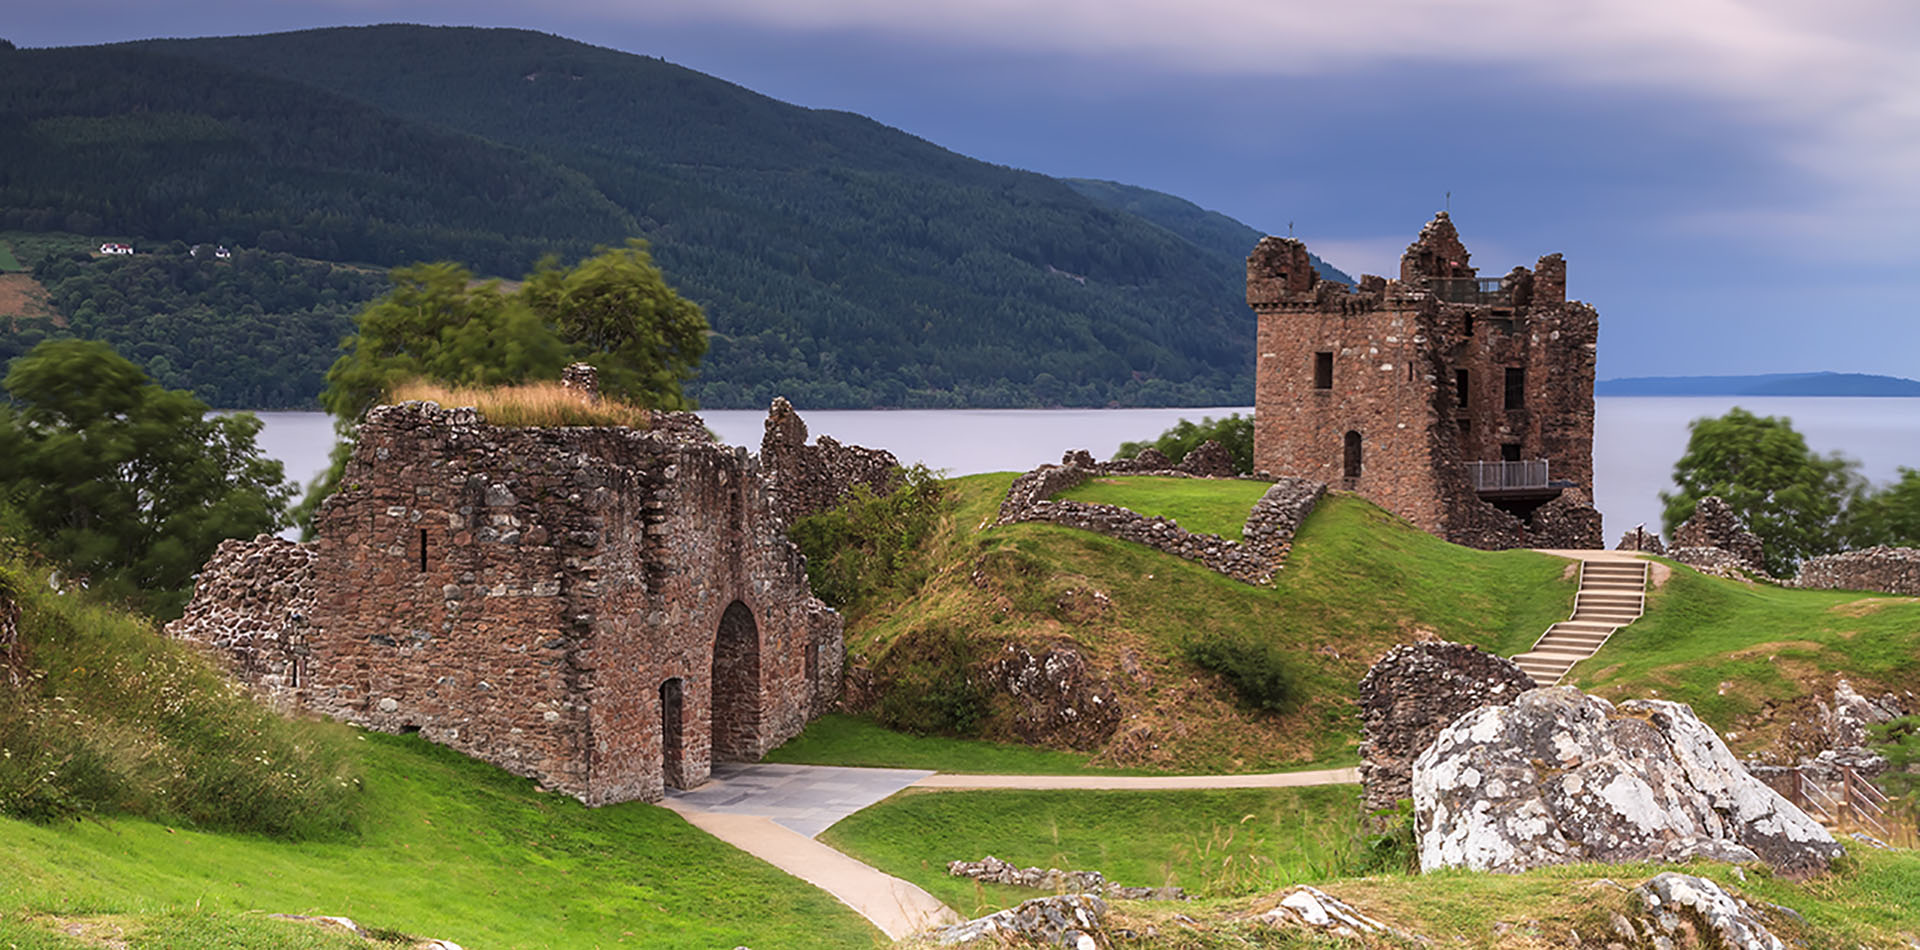 Europe United Kingdom Scotland Loch Ness Urqhart Castle ancient ruins scenic mountains - luxury vacation destinations